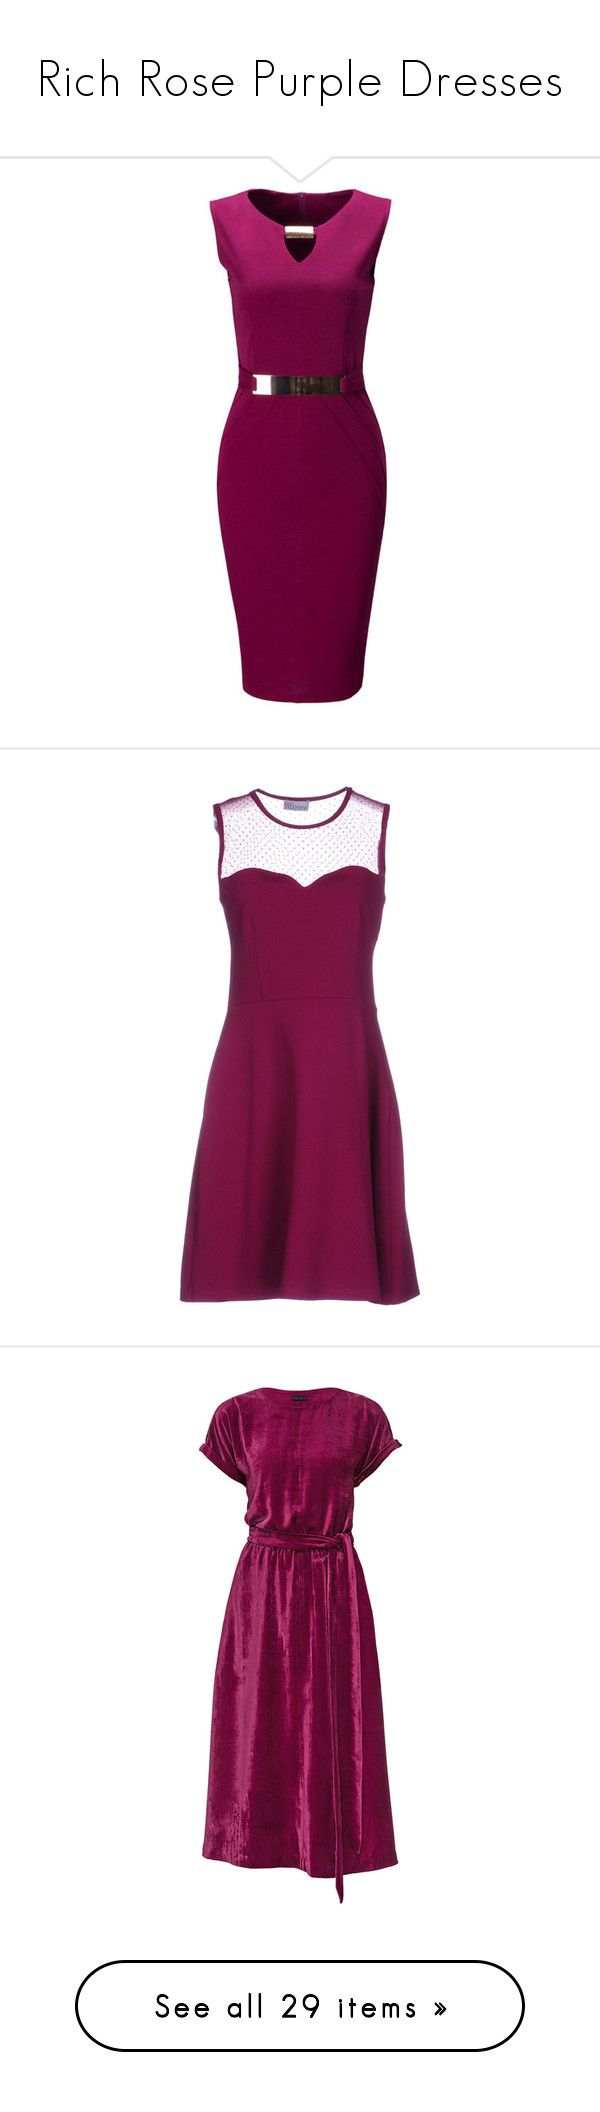 """""""Rich Rose Purple Dresses"""" by tegan-b-riley on Polyvore featuring dresses, short dresses, embellished mini dress, embellished short dress, bodycon cocktail dresses, embellished dress, purple dresses, mauve, rayon dress and sleeveless dress"""